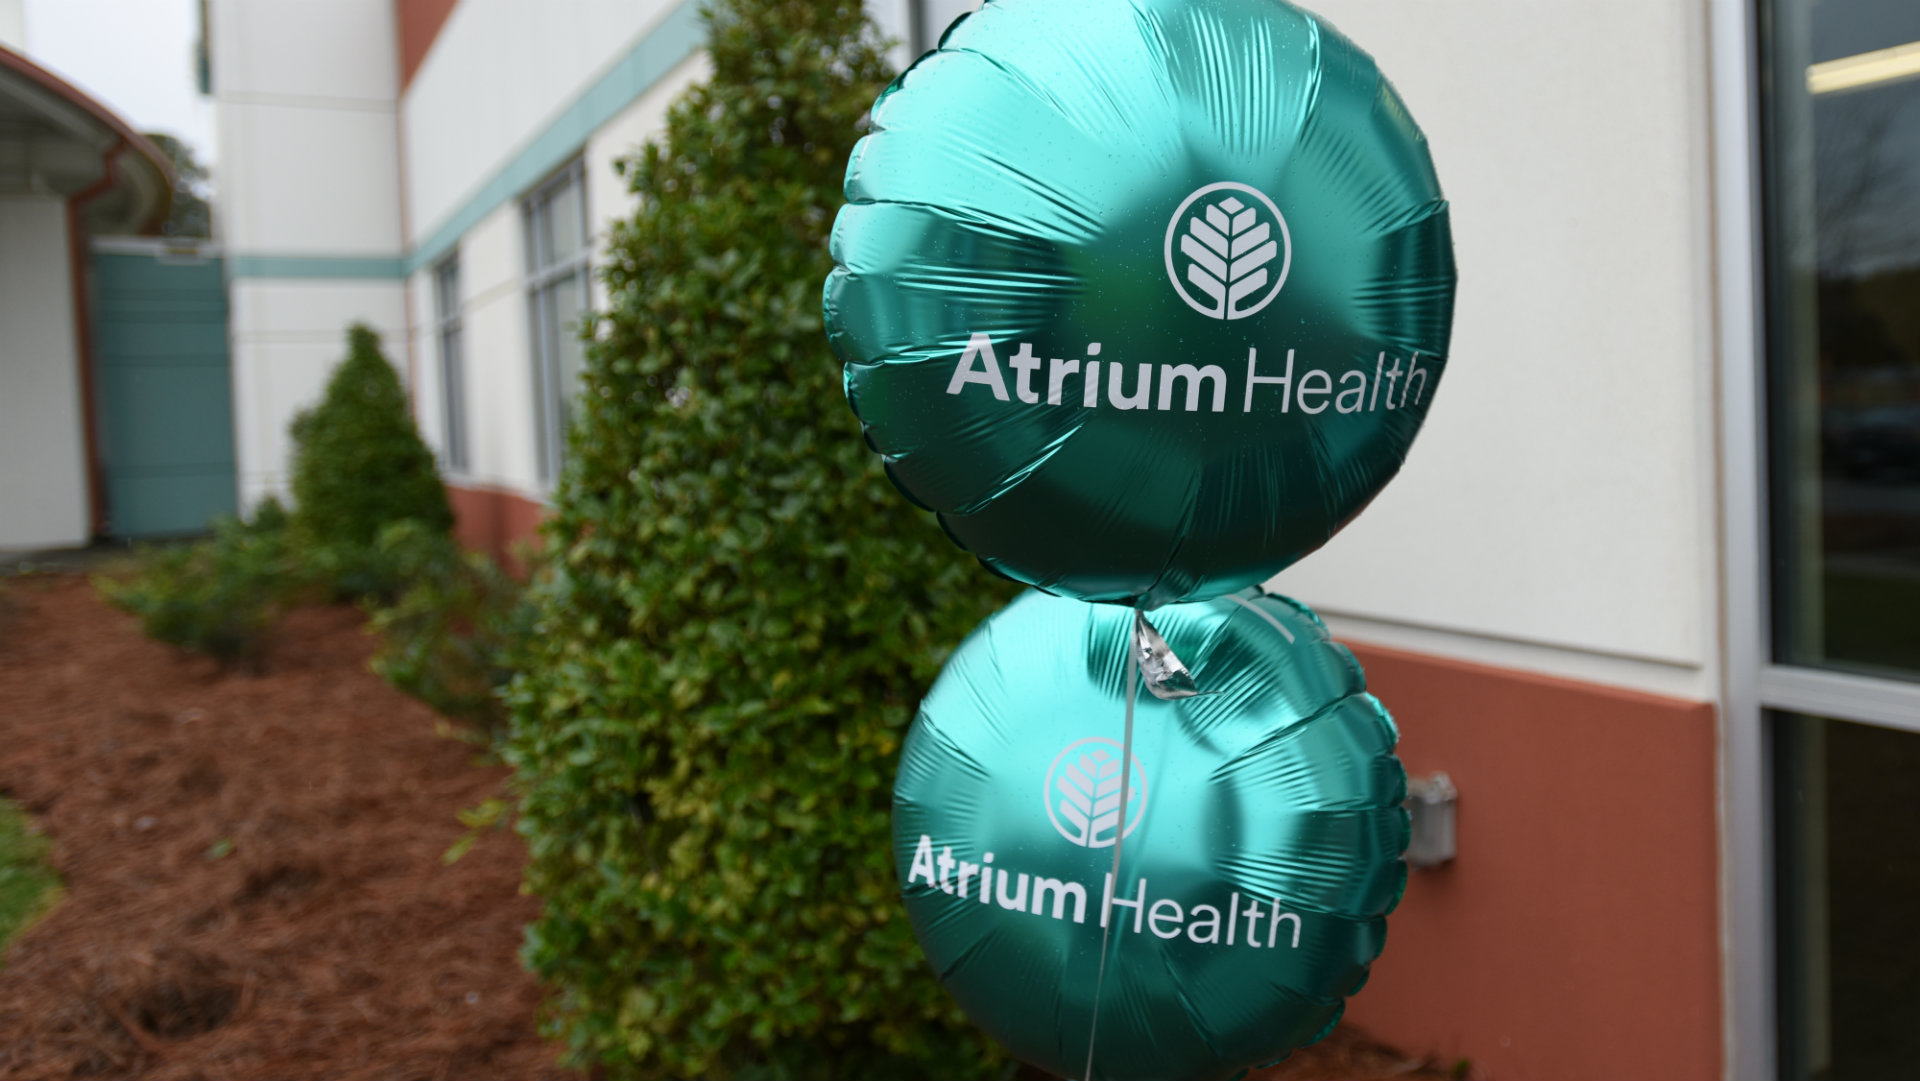 In February 2018, our organization announced a new name – Atrium Health. In 2020, the healthcare system will celebrate 80 years -- remaining as committed today as ever in carrying out our mission to improve health, elevate hope and advance healing – for all.